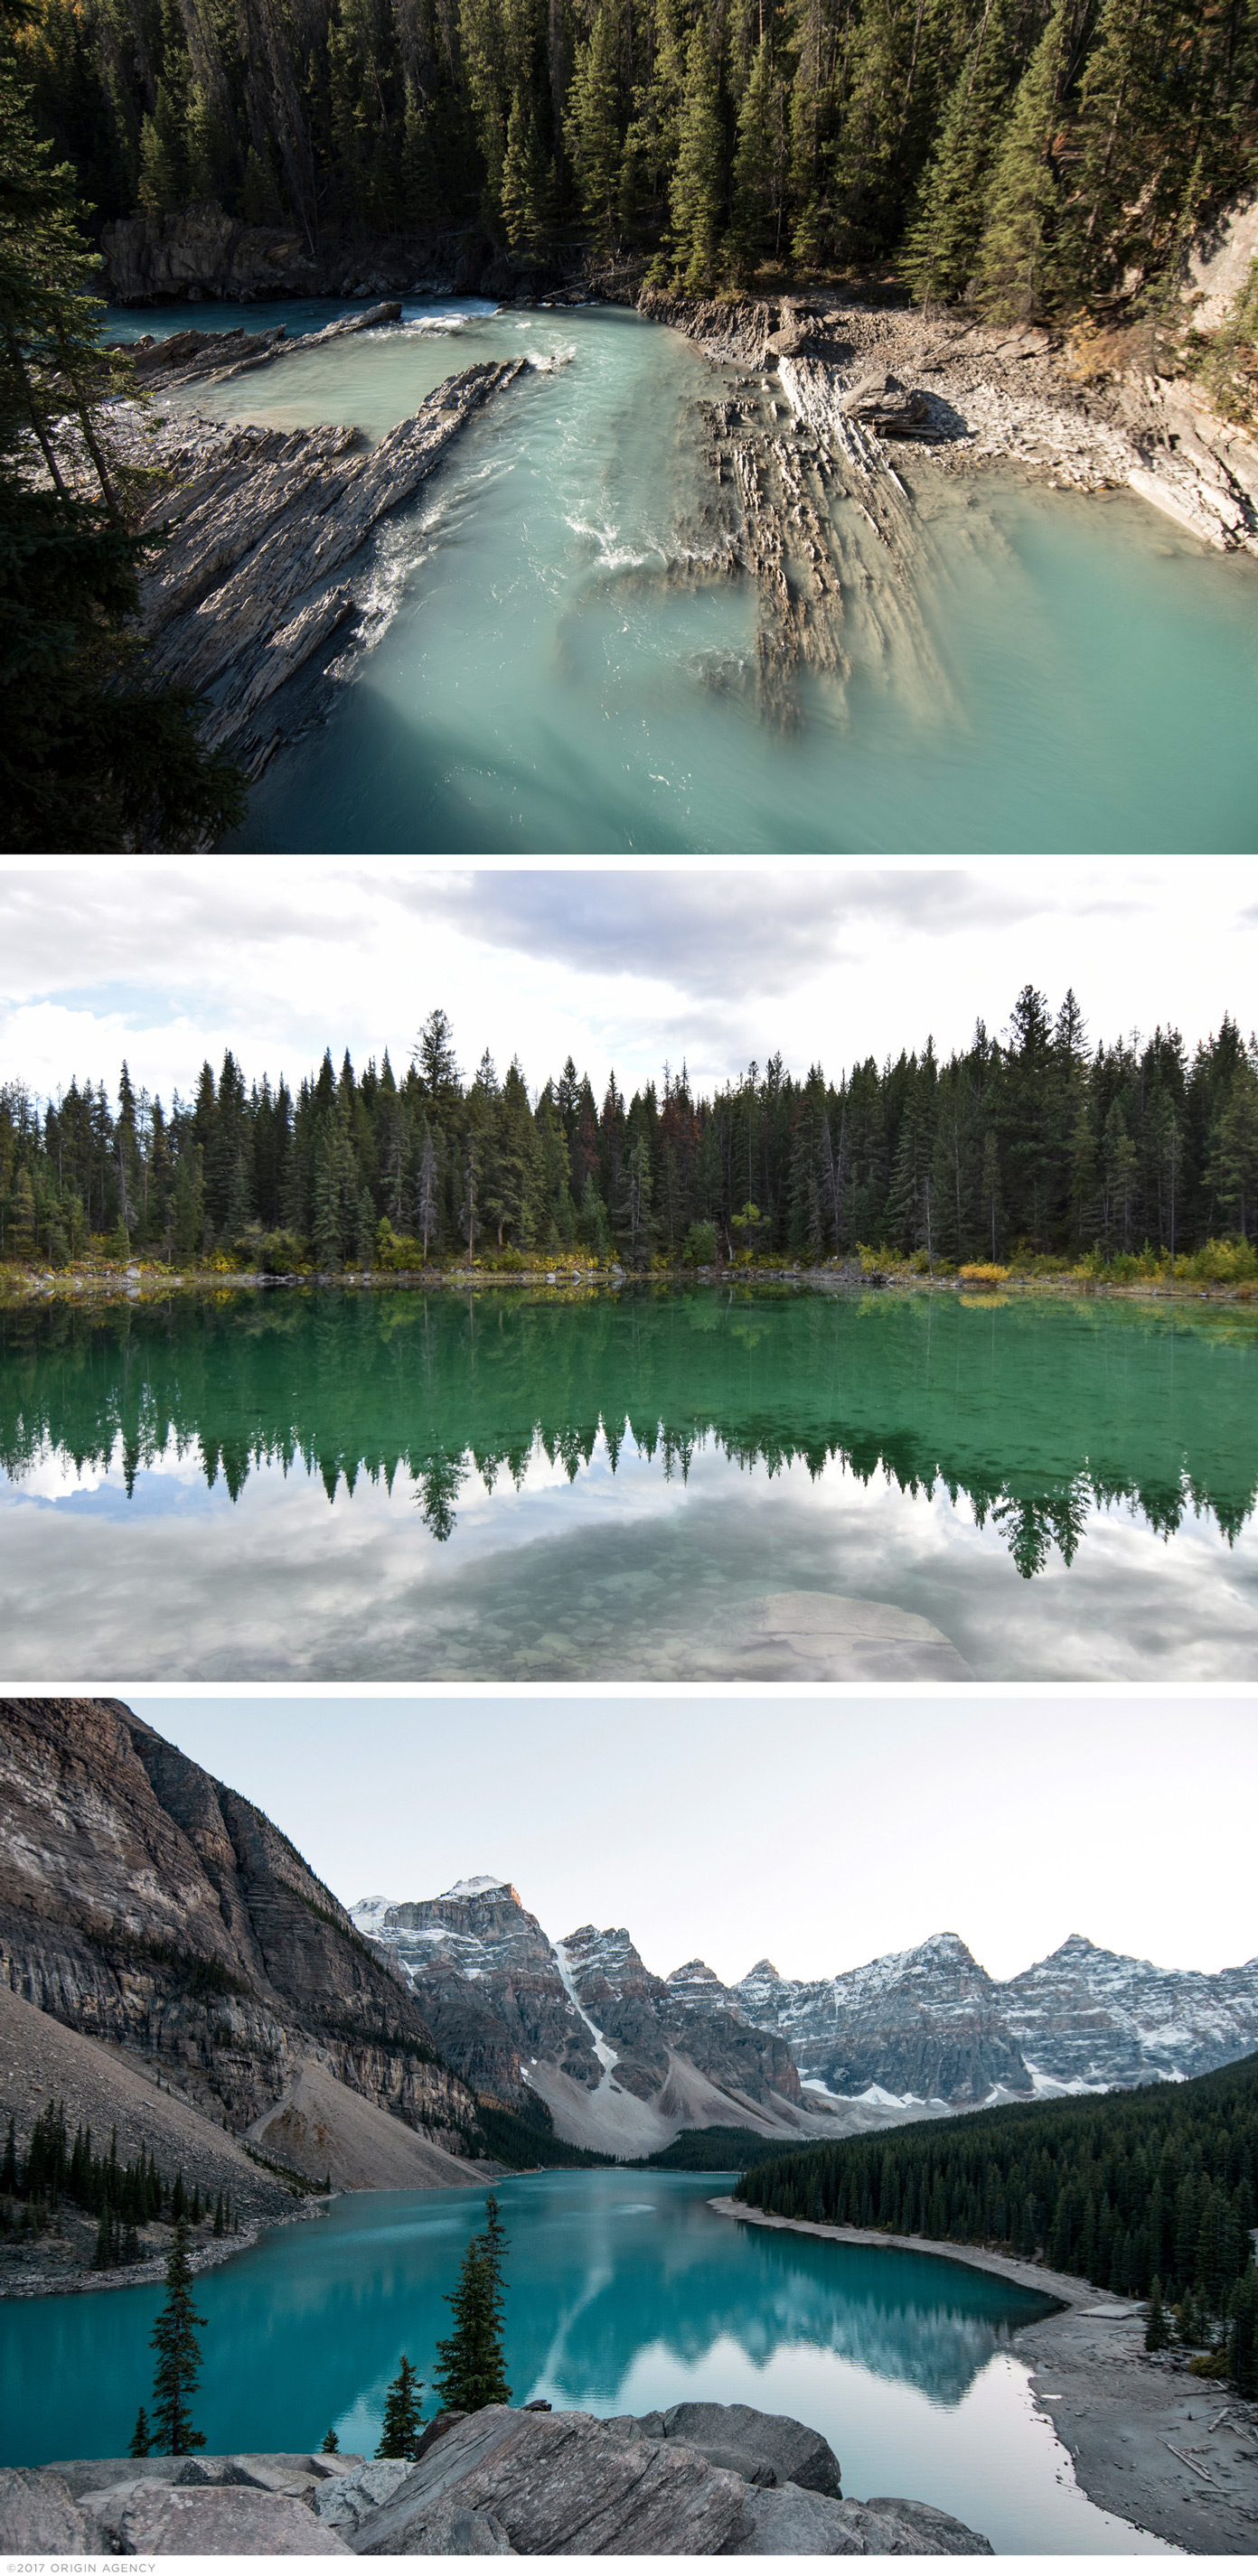 origin-agency-canada-lakes-streams.jpg